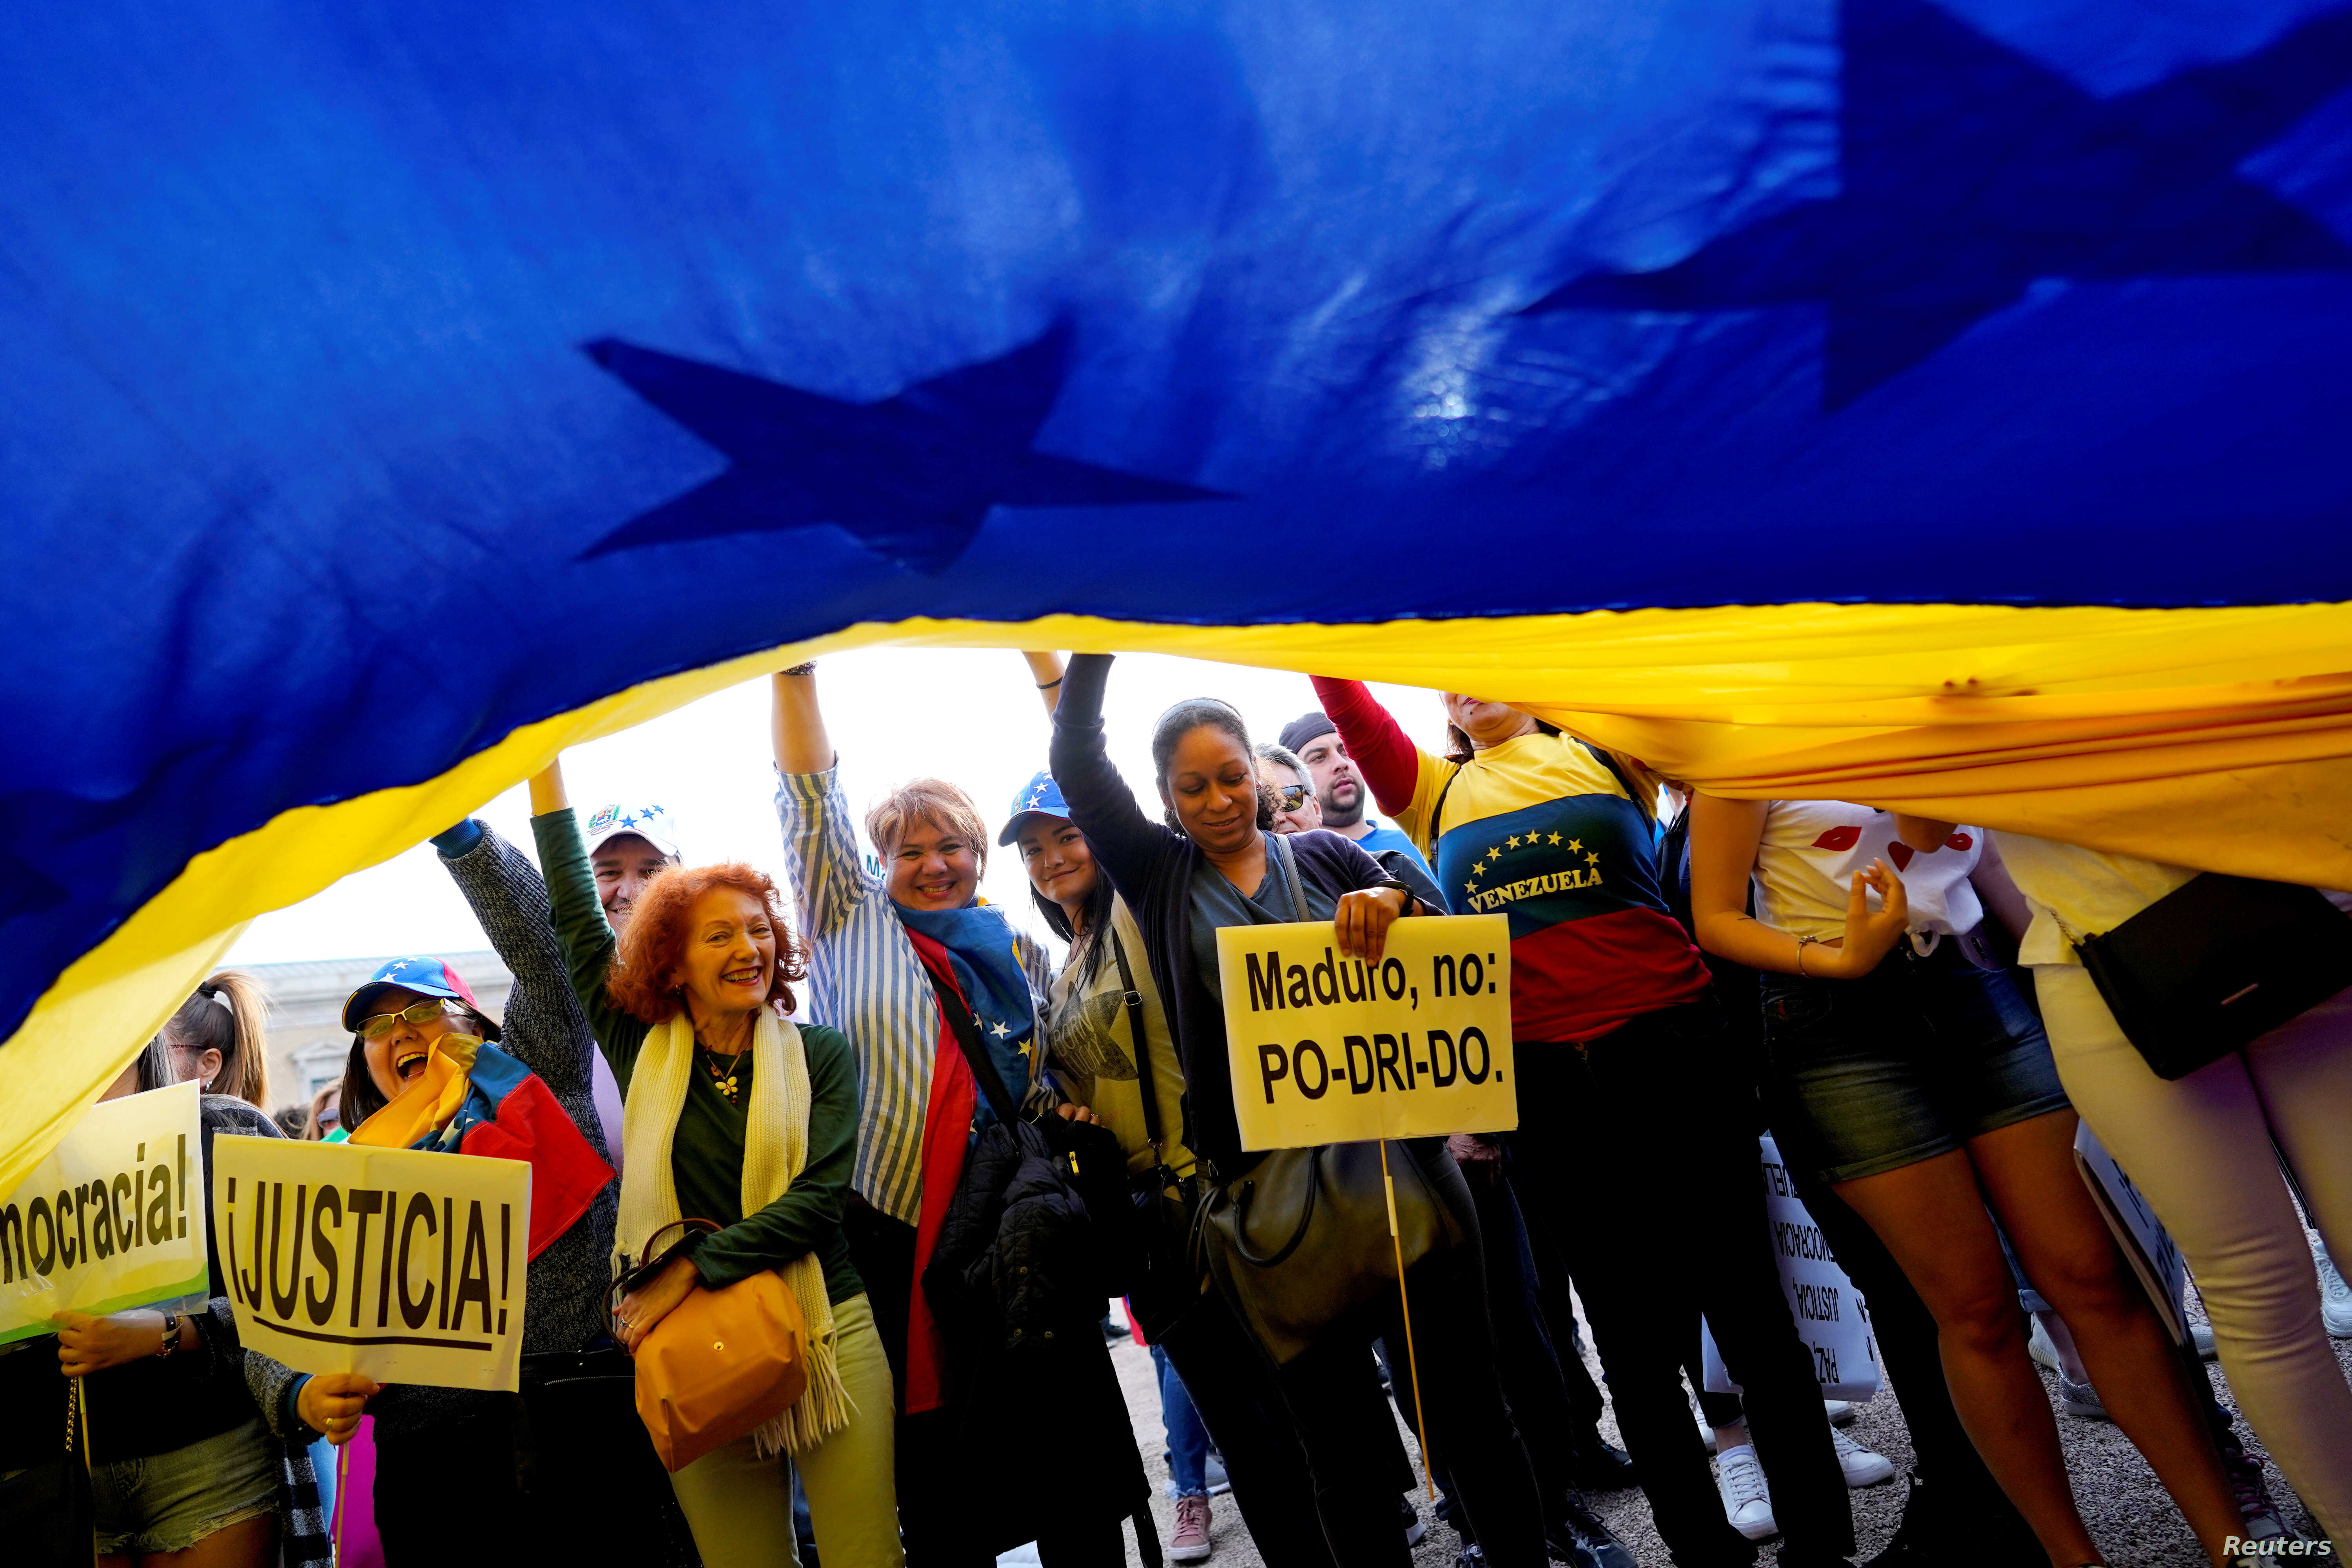 People reacts as they wave a Venezuelan flag during a protest in support of Venezuelan opposition leader Juan Guaido at Colon Square in Madrid, Spain, May 1, 2019.